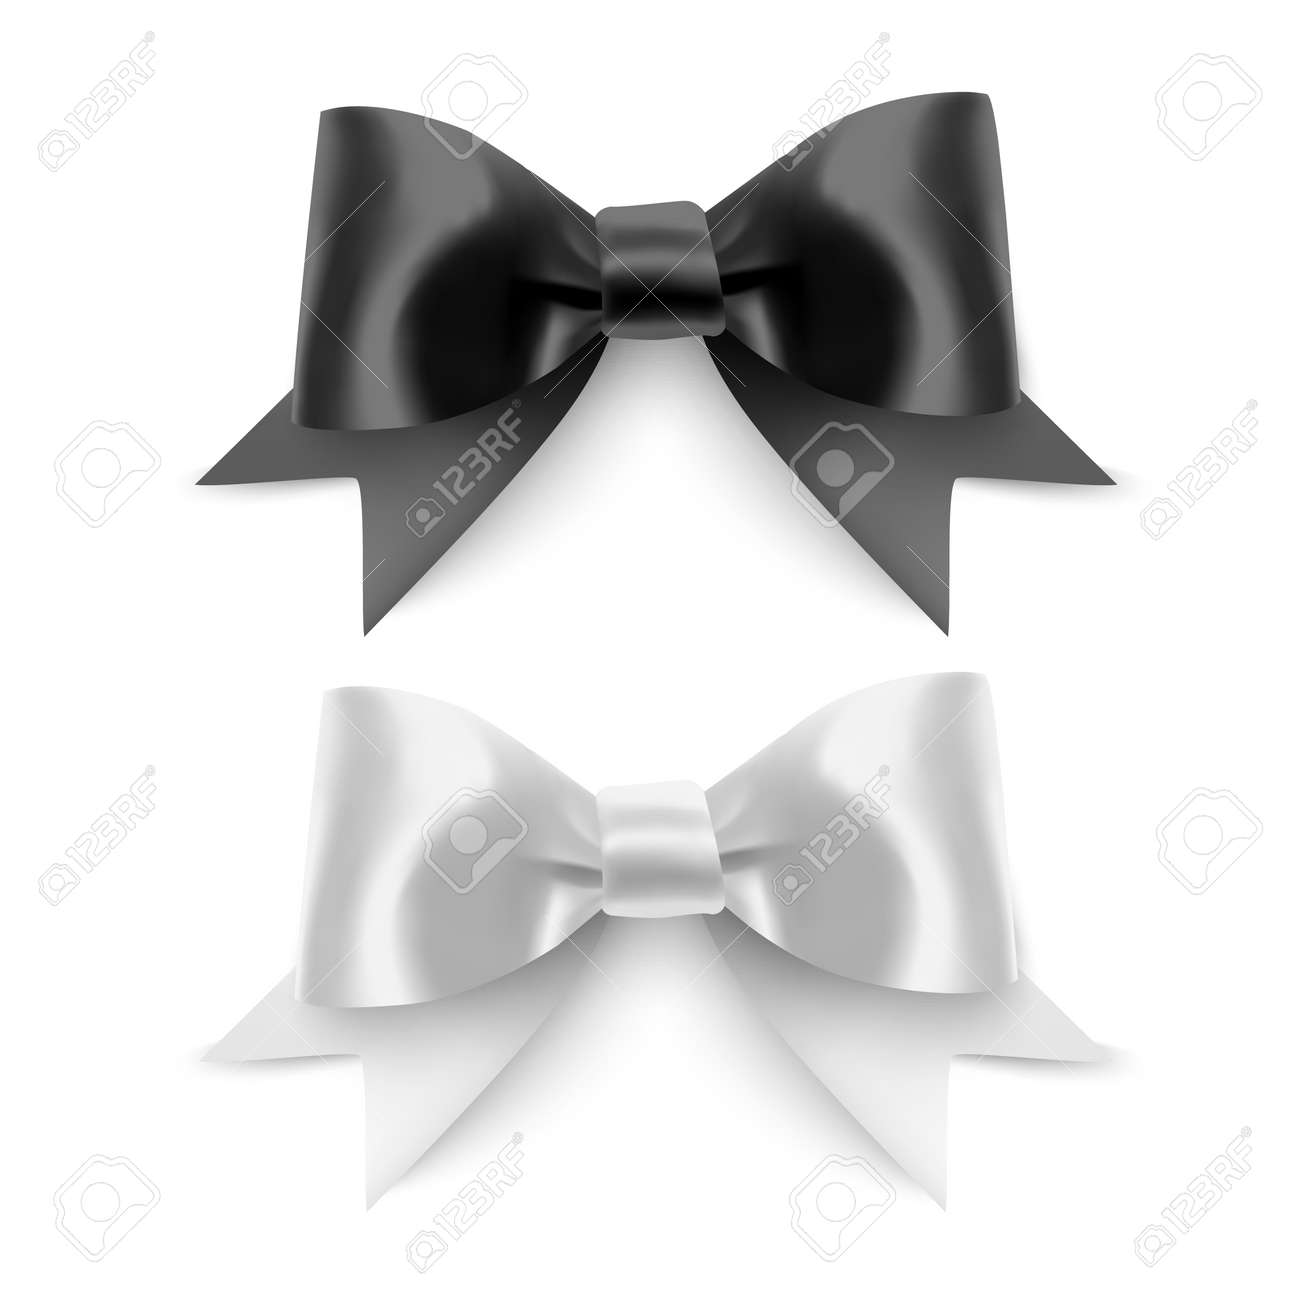 Set of Realistic bows, Ribbon of black and white colors isolated on white background. Vector eps 10 format - 173701456